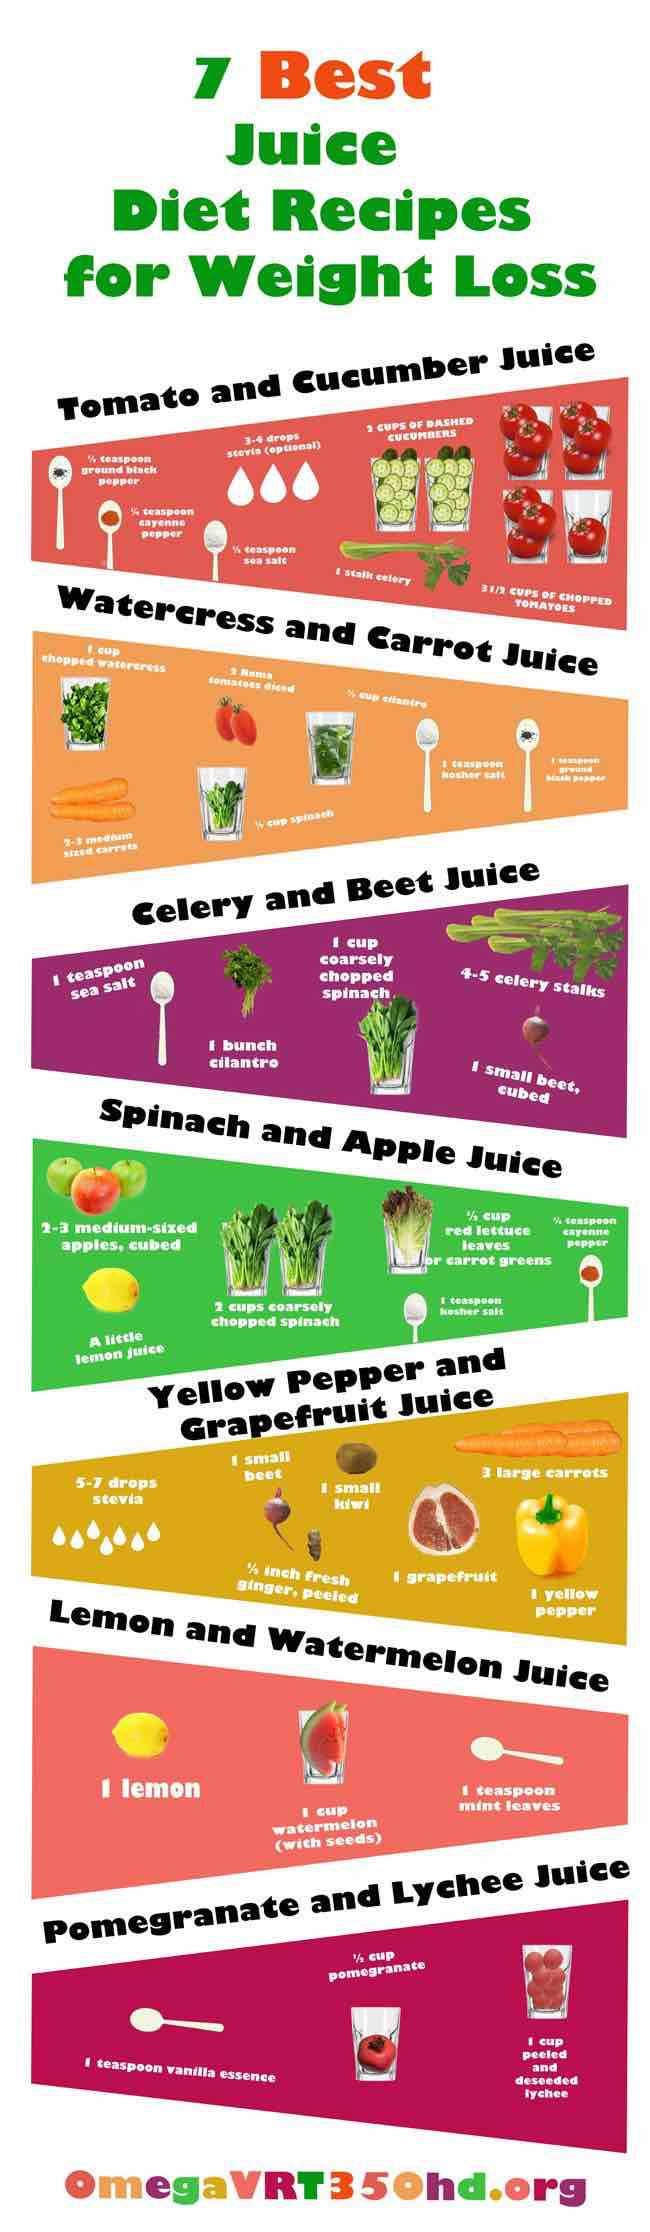 Liquid Diet Weight Loss Recipes  Juicing Recipes for Detoxing and Weight Loss MODwedding